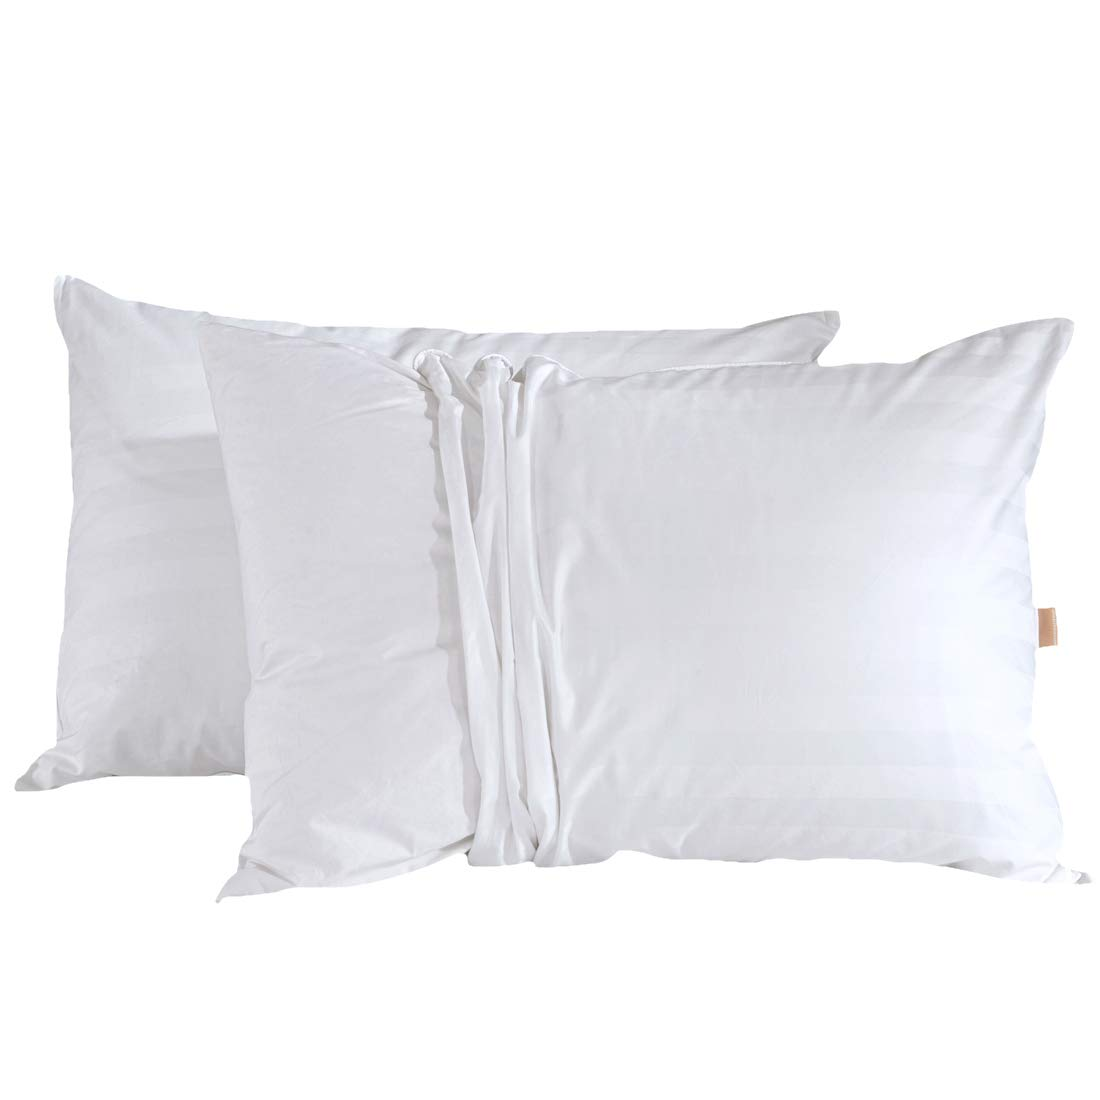 (King) - Puredown White Goose Down Pillow with 2 free pillow protectors, King Size, White, Set of 2 B019PZNHCS  キング